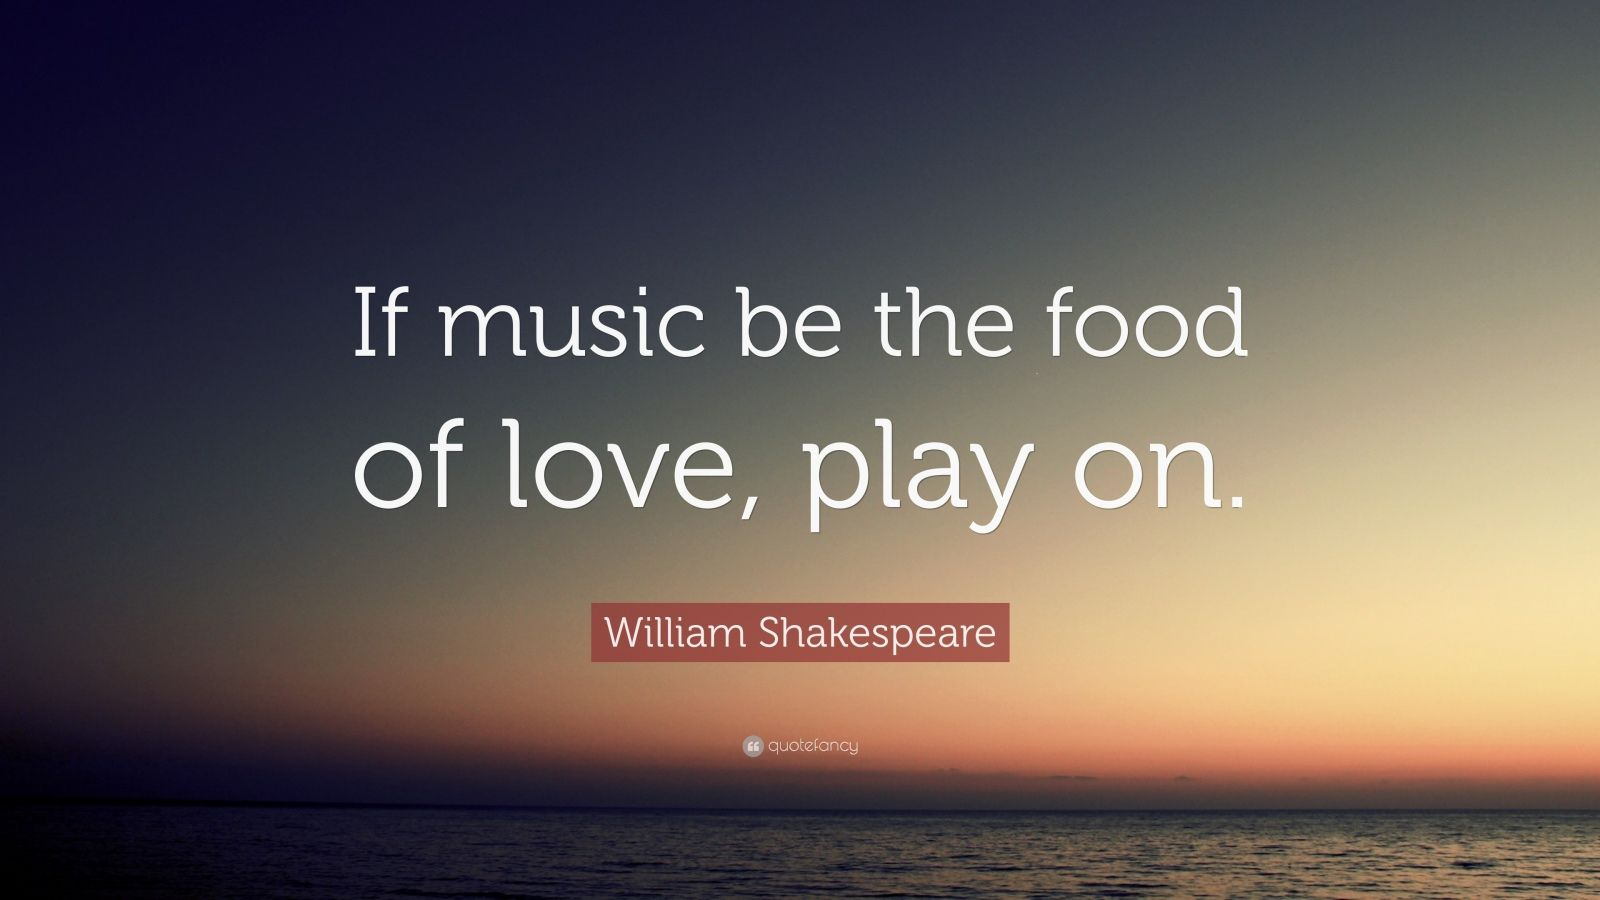 Mother Quote Wallpaper William Shakespeare Quote If Music Be The Food Of Love